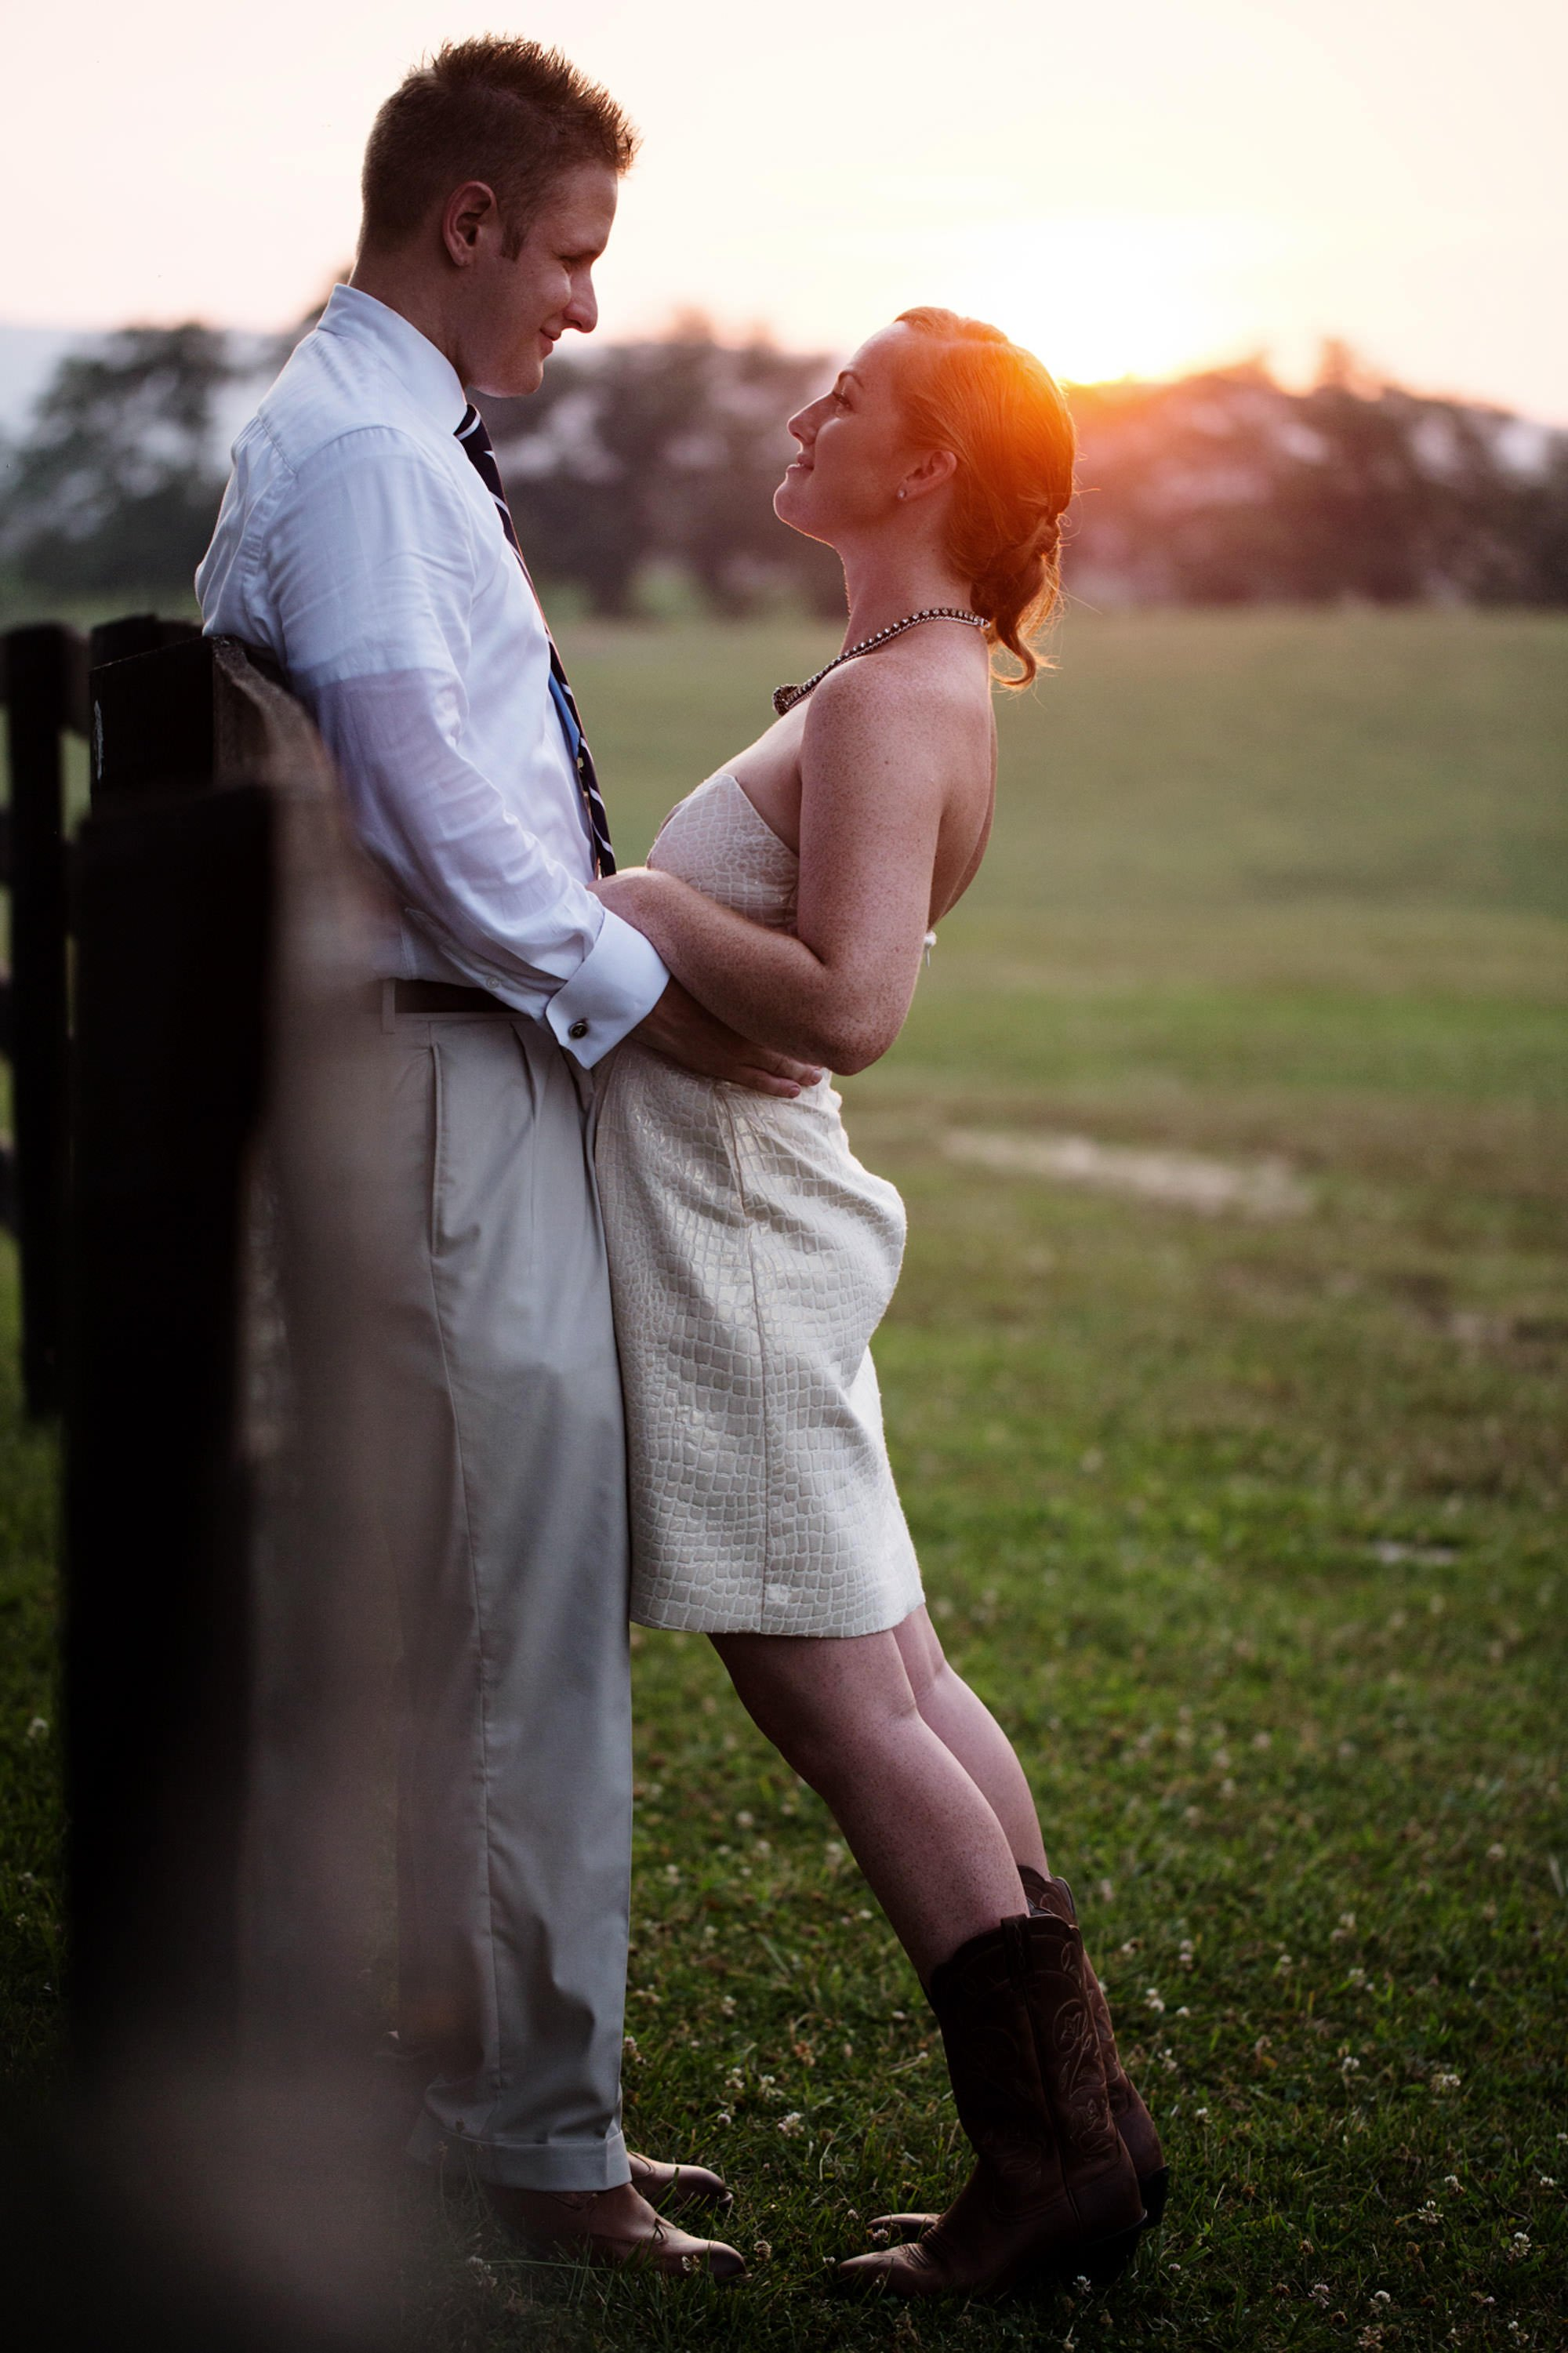 The bride and groom take a moment alone during sunset at their Marriott Ranch wedding.